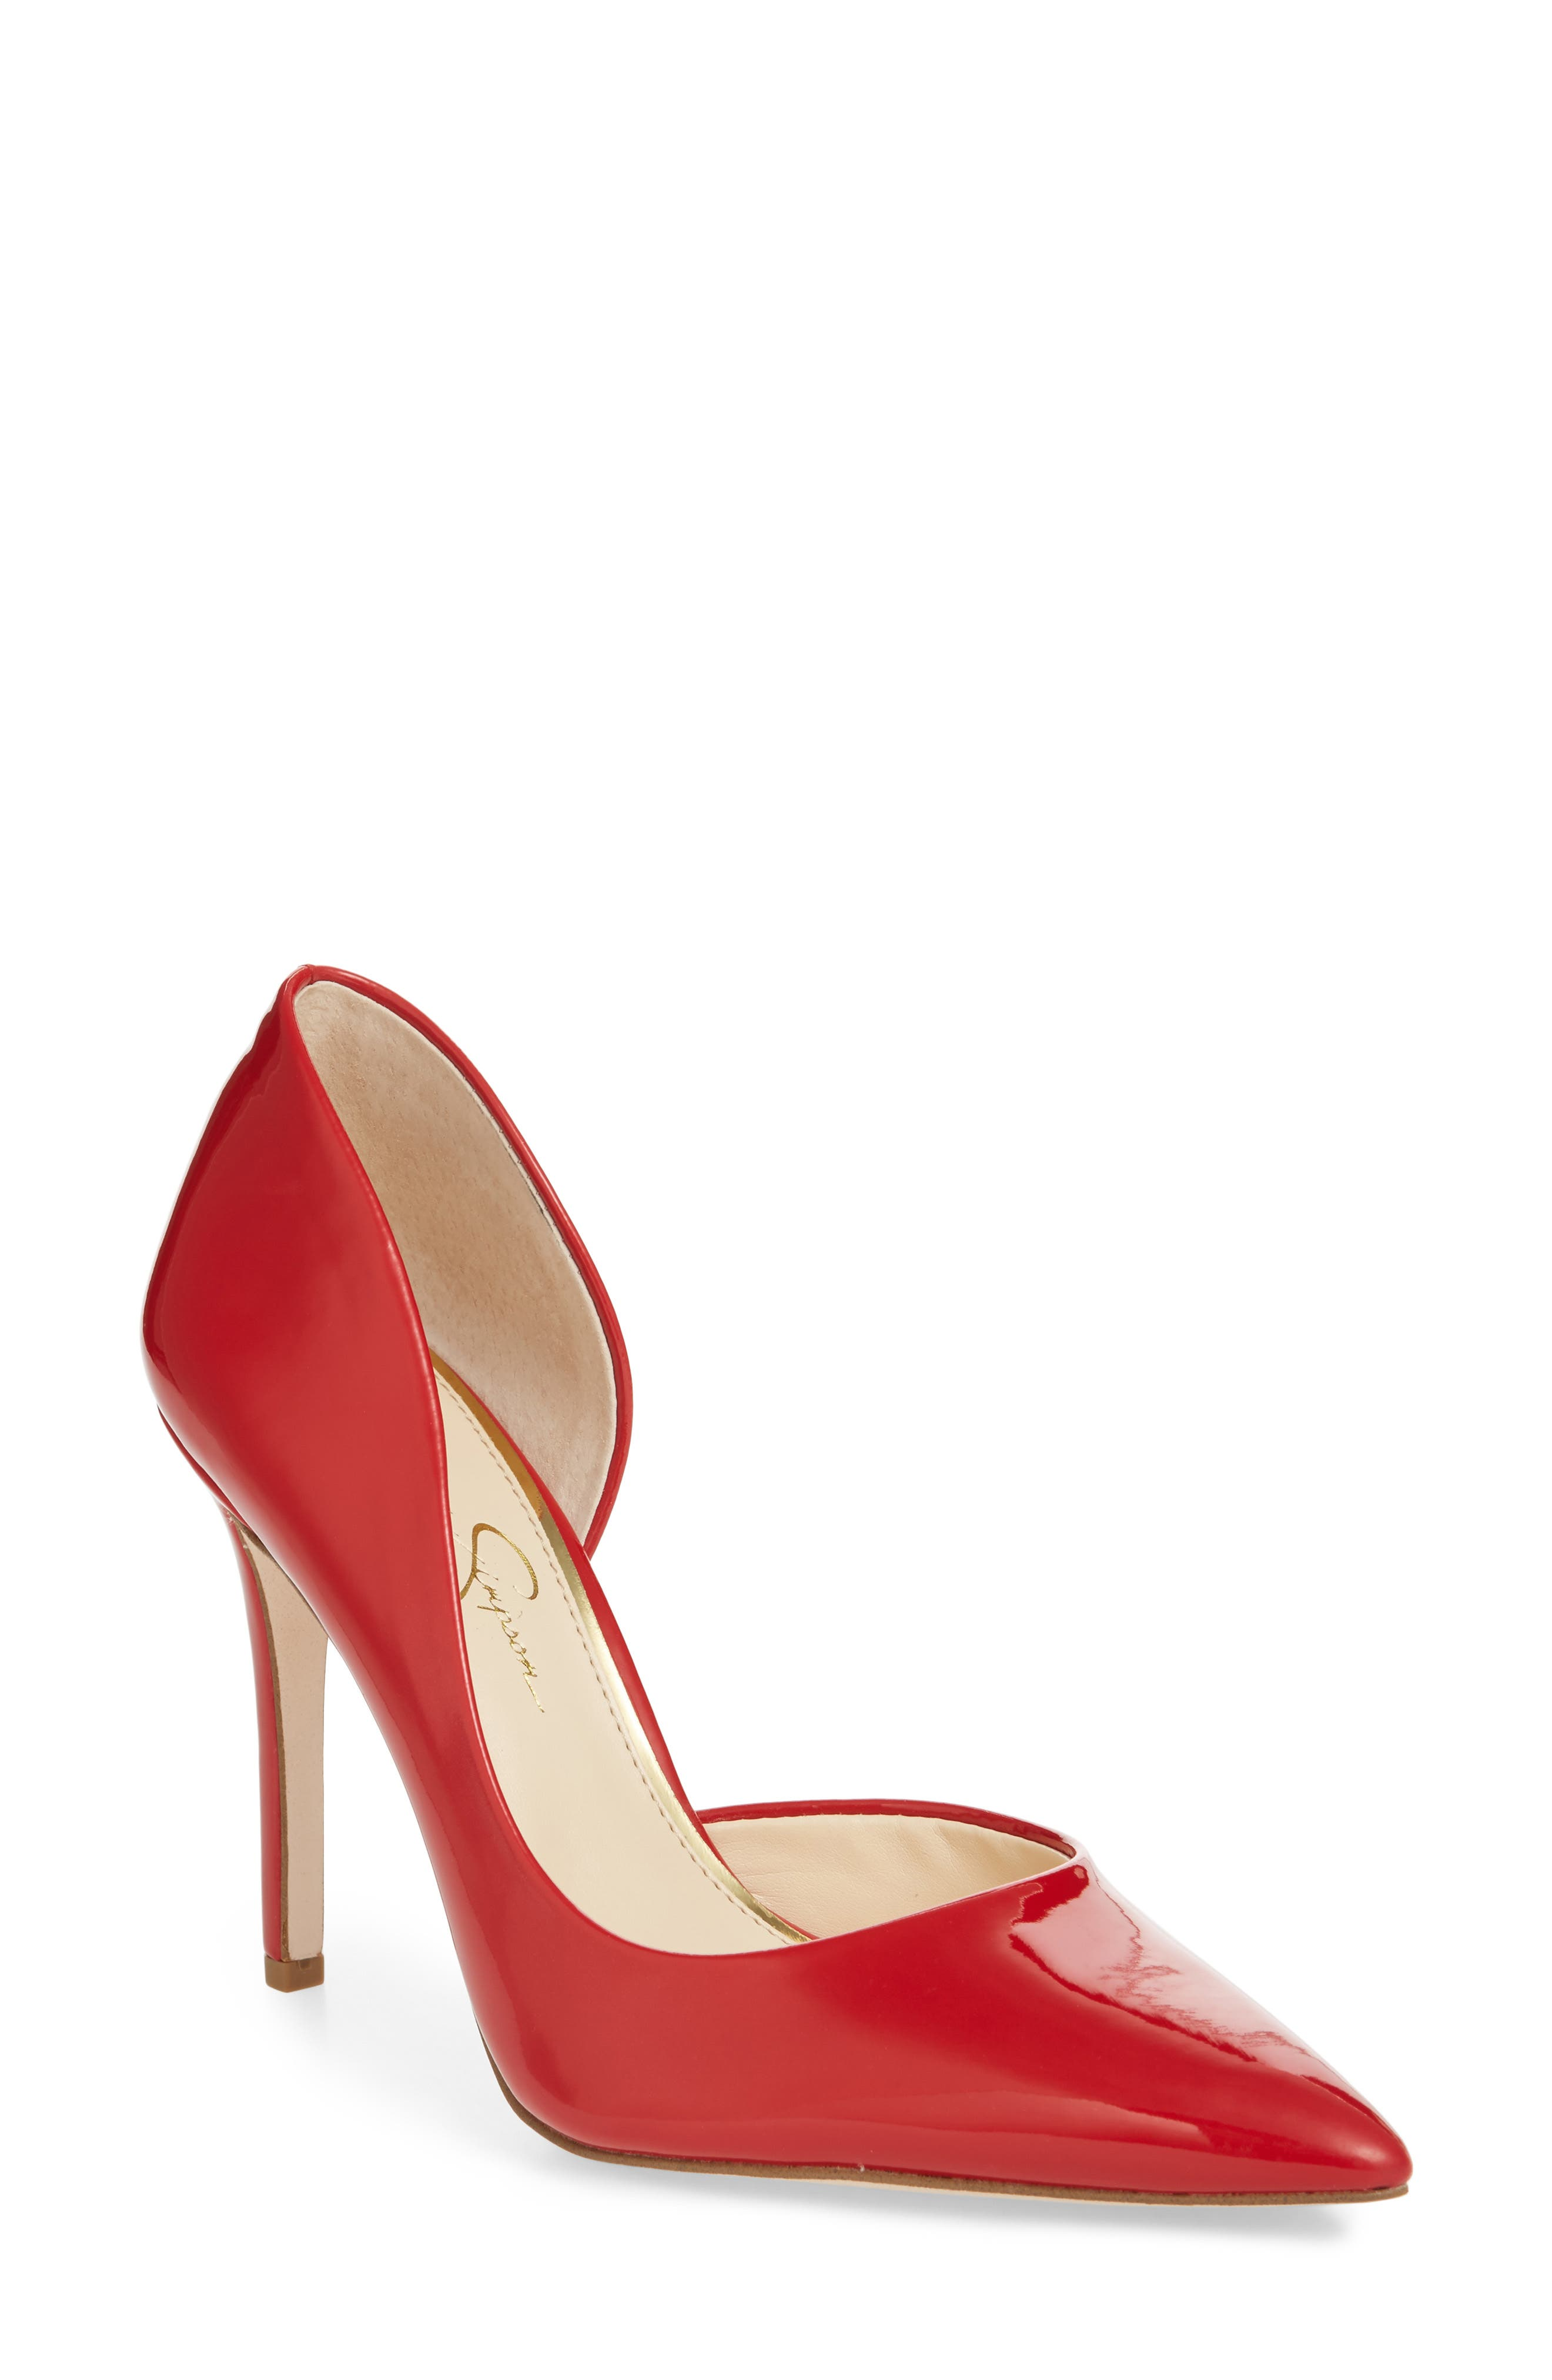 Pheona Pump,                         Main,                         color, Red Muse